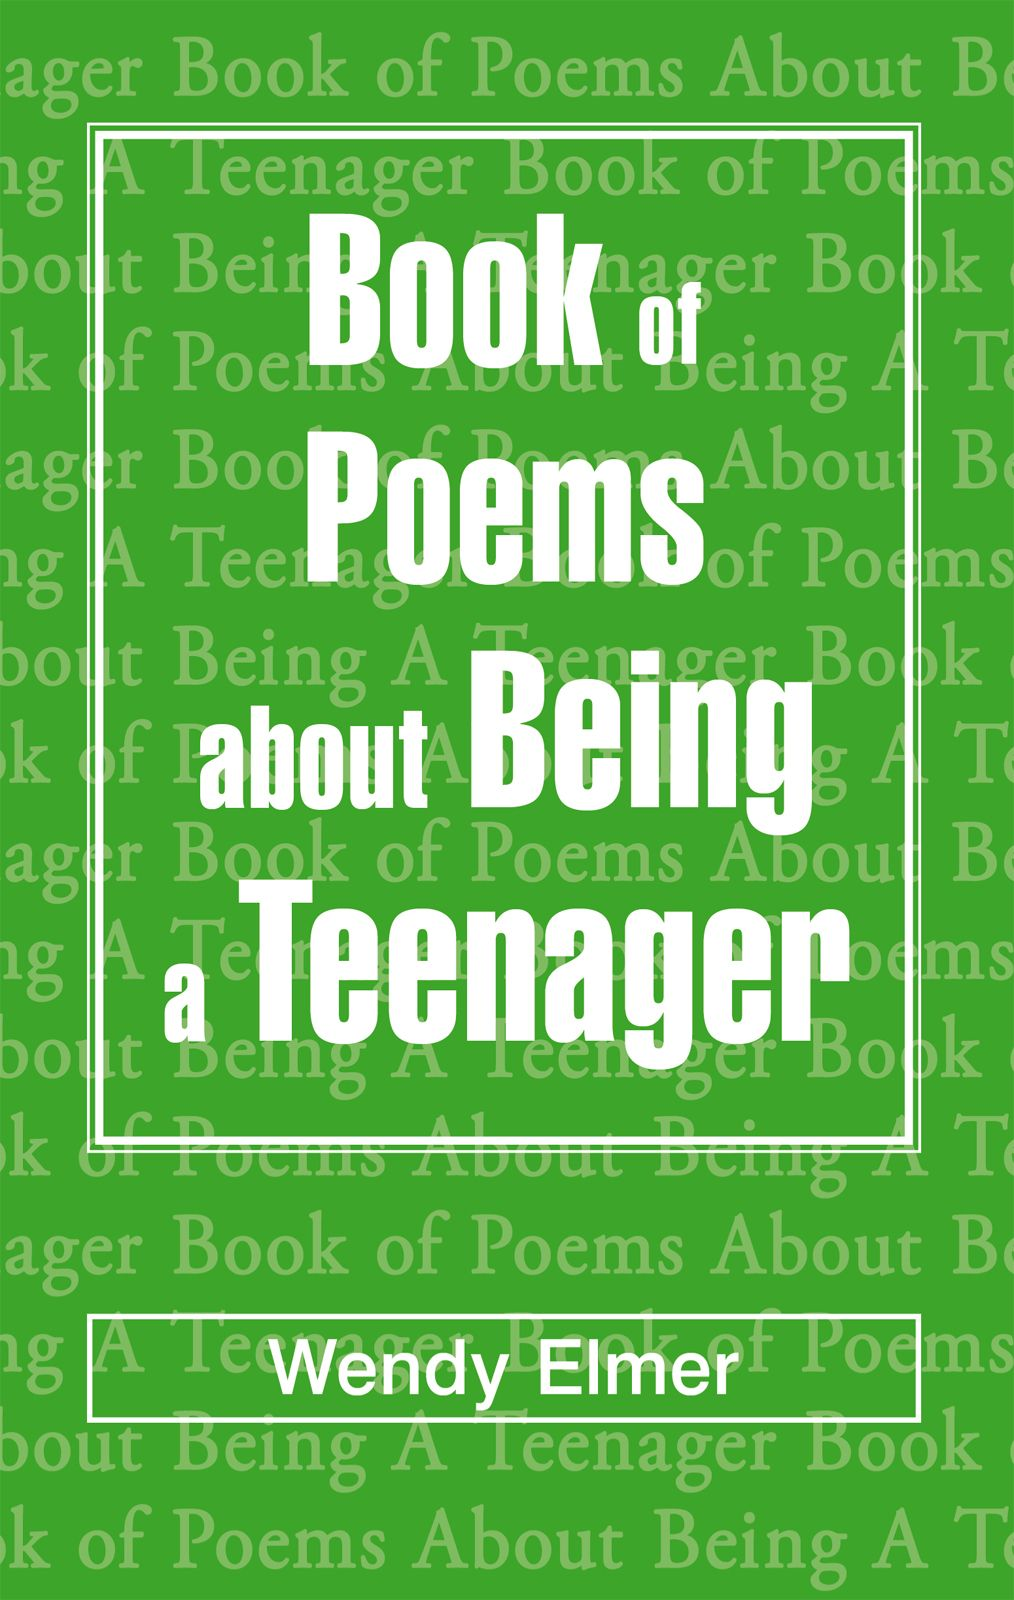 Book Of Poems About Being A Teenager By: Wendy Elmer